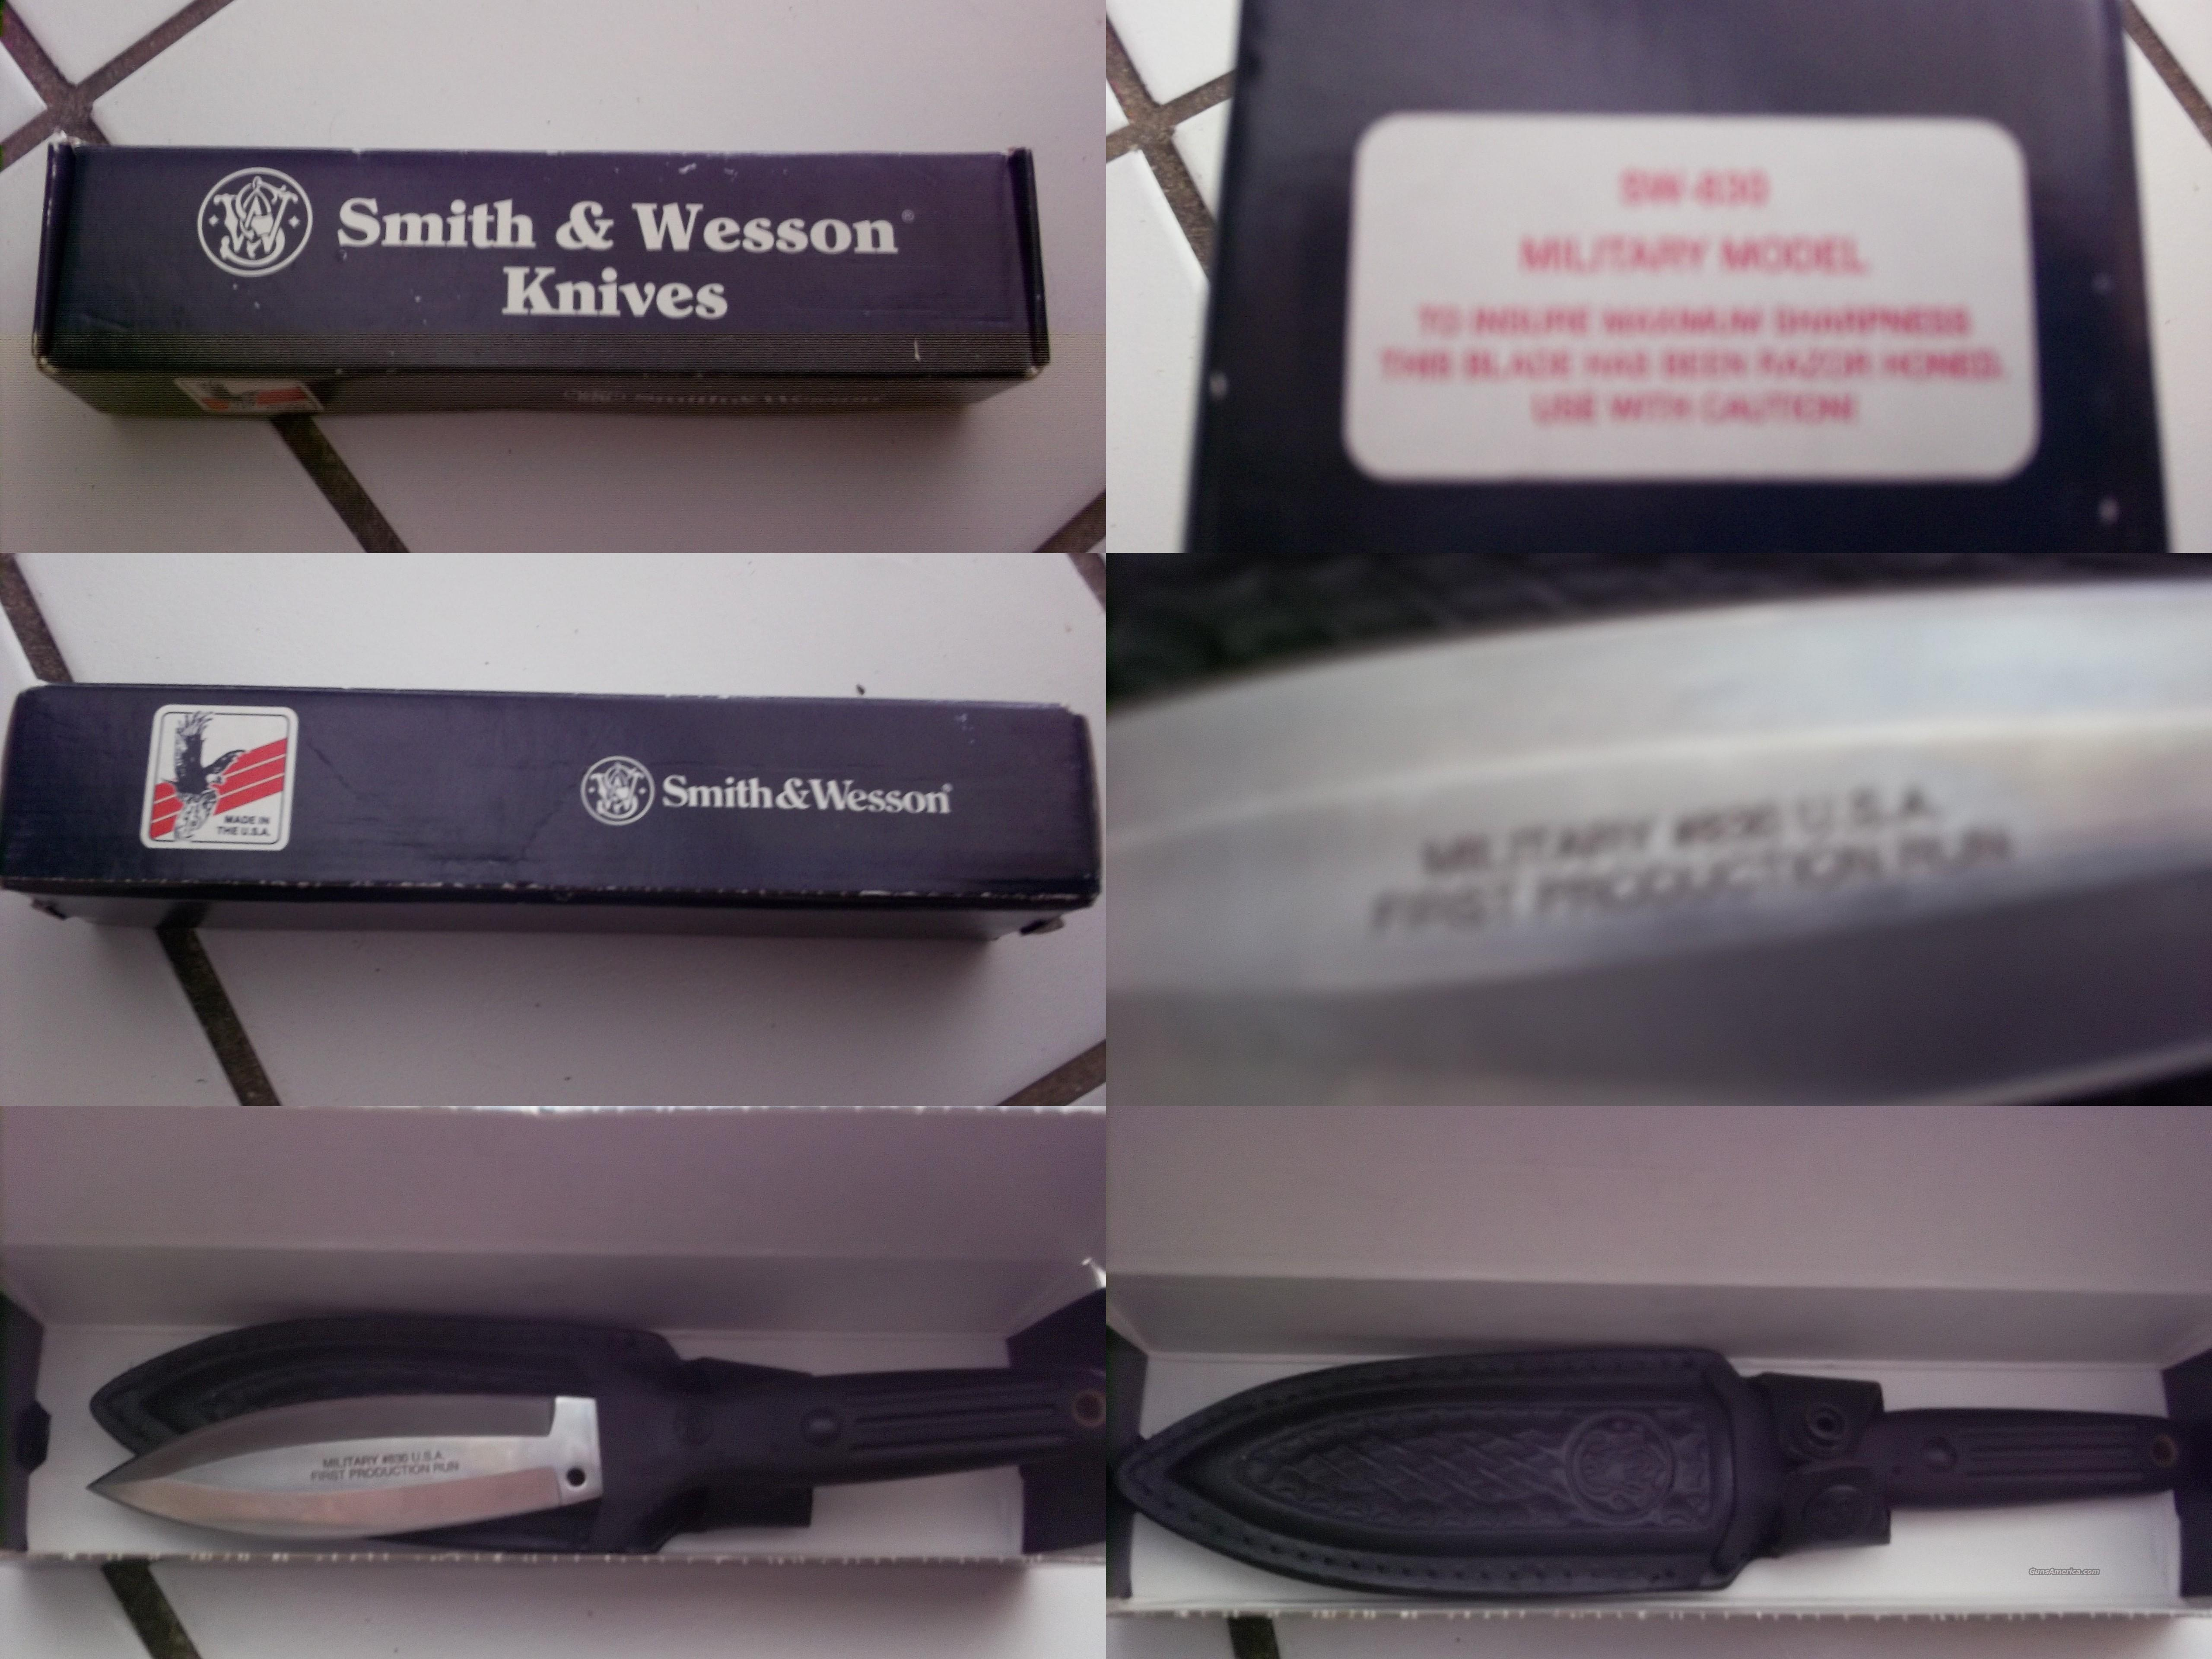 smith and wesson knive sw-830 military model knife  Non-Guns > Knives/Swords > Military > Non-Bayonets